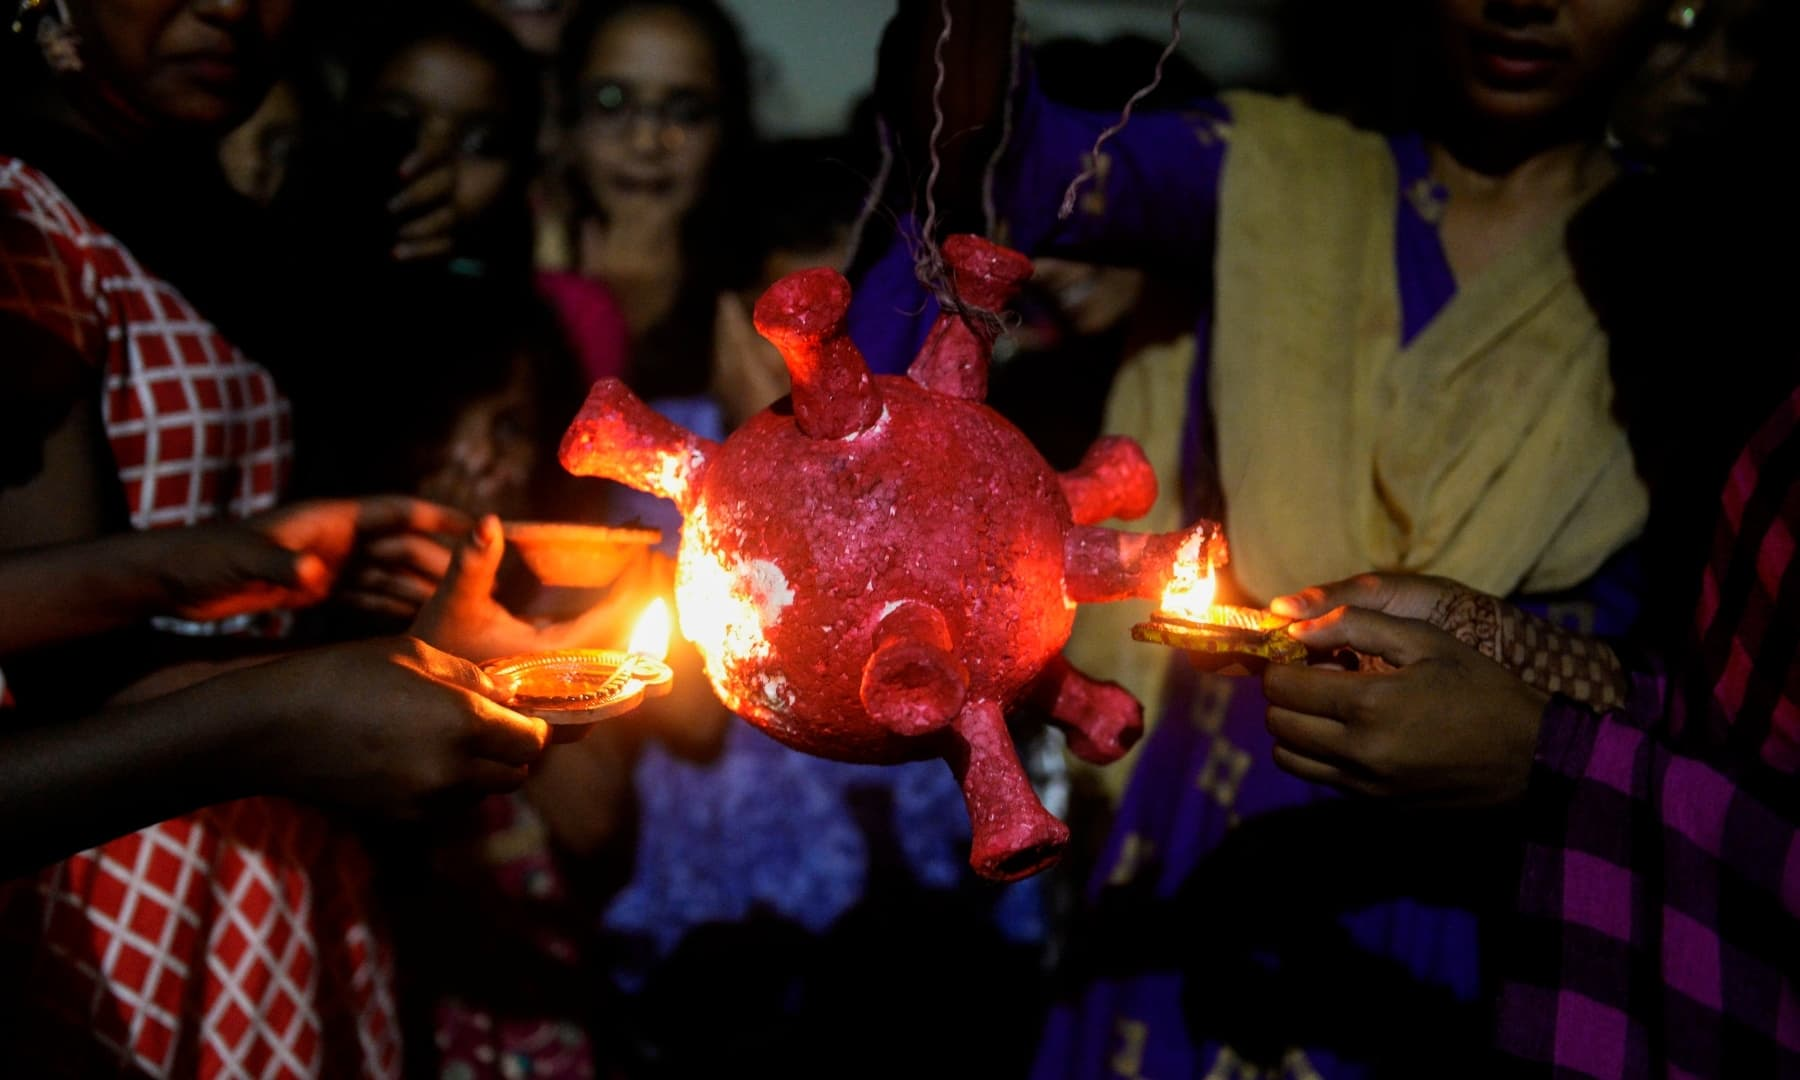 Students from the government girls hostel prepare to burn a Covid-19 coronavirus model during Diwali in Hyderabad, India. — AFP